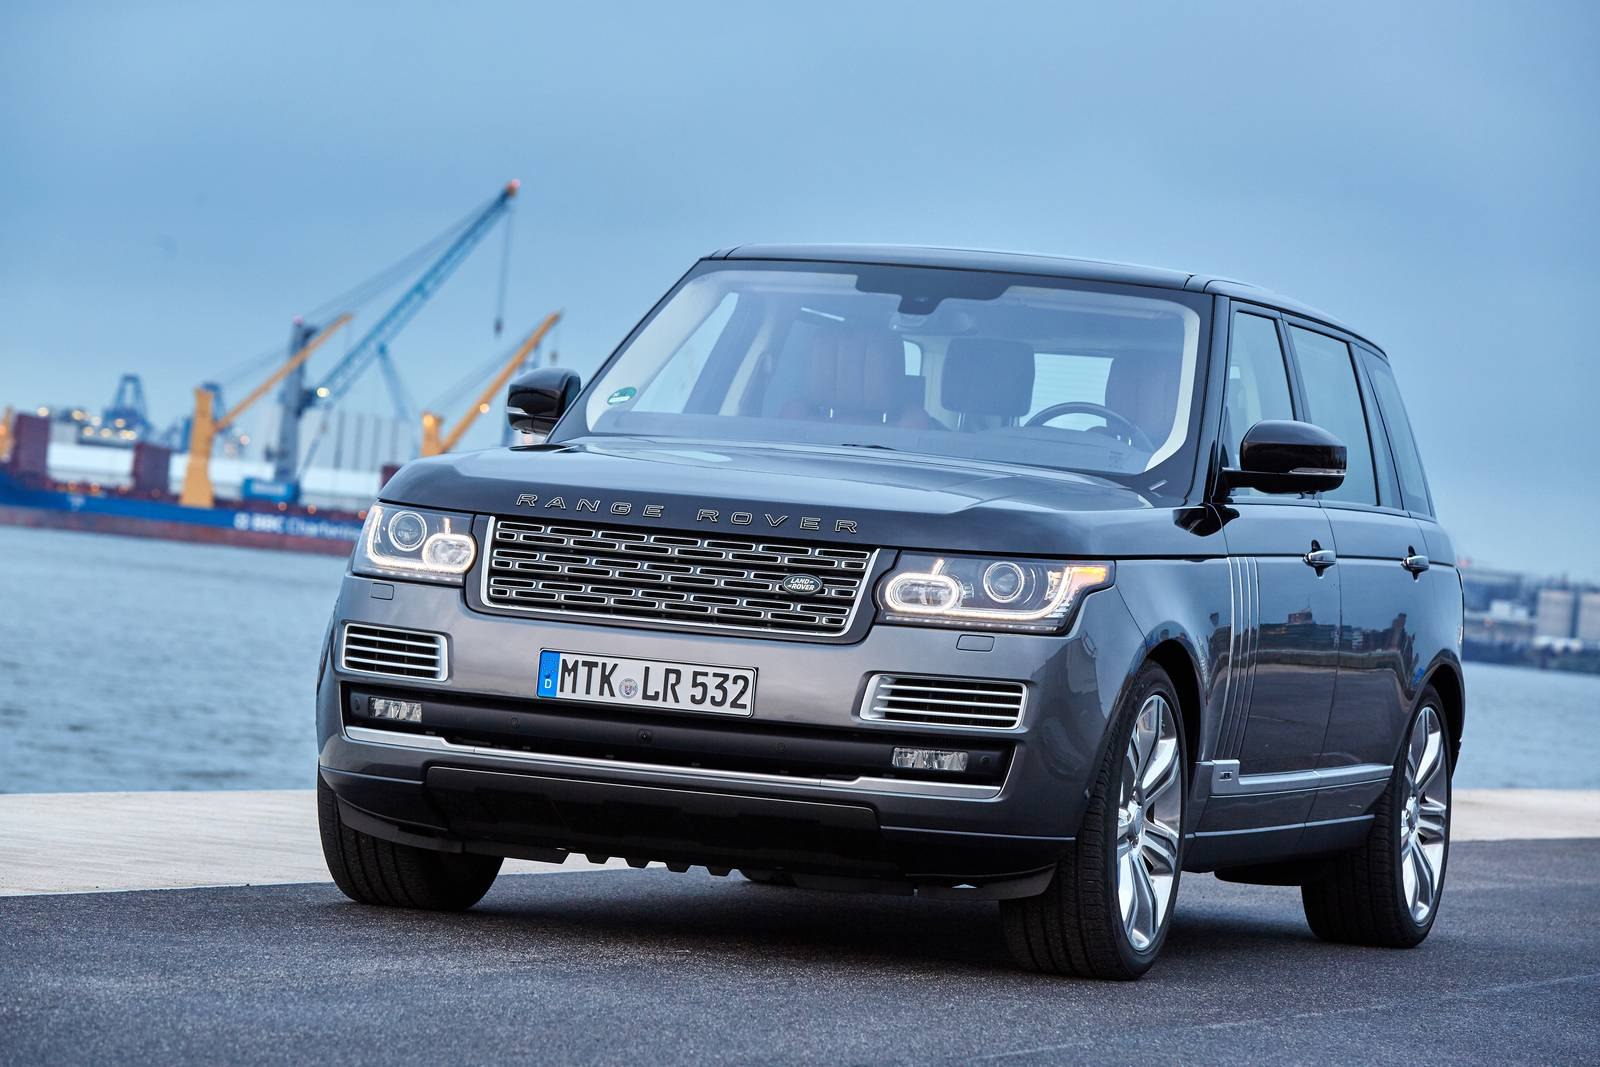 2016 range rover svautobiography review gtspirit. Black Bedroom Furniture Sets. Home Design Ideas